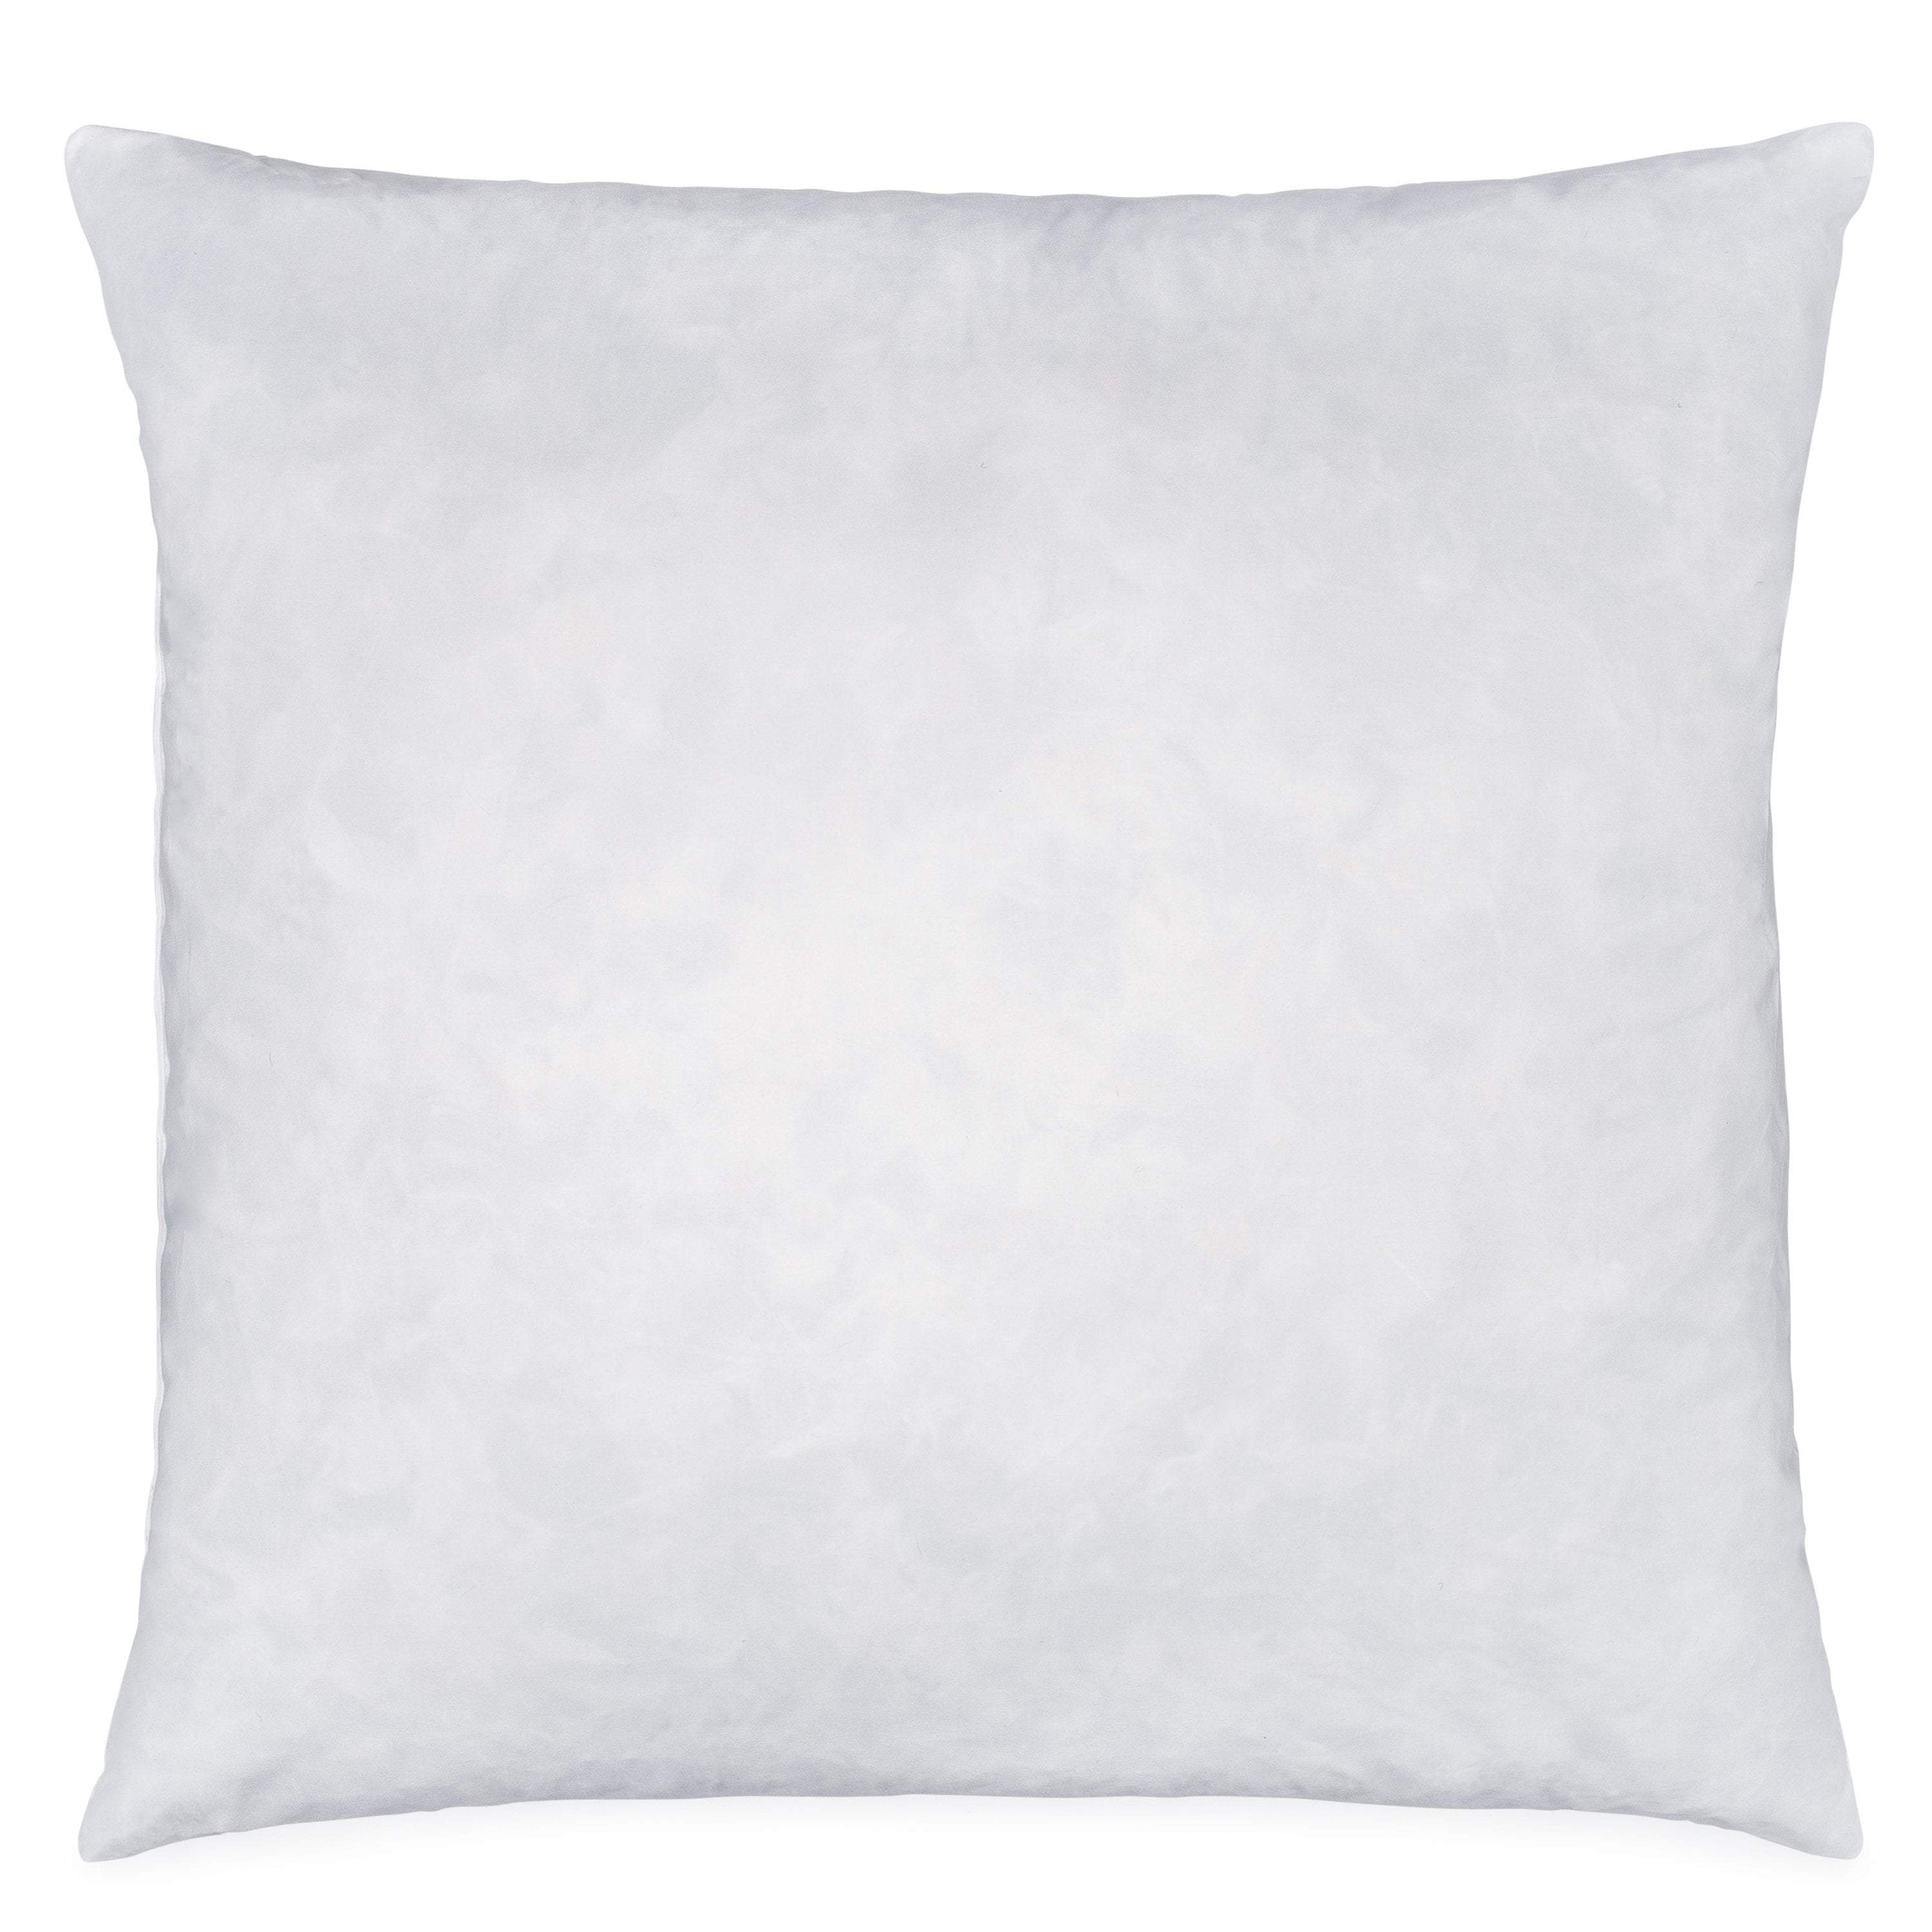 Danmitex Set of 2-24x24-Down Feather Euro Pillow Inserts-Cotton Fabric